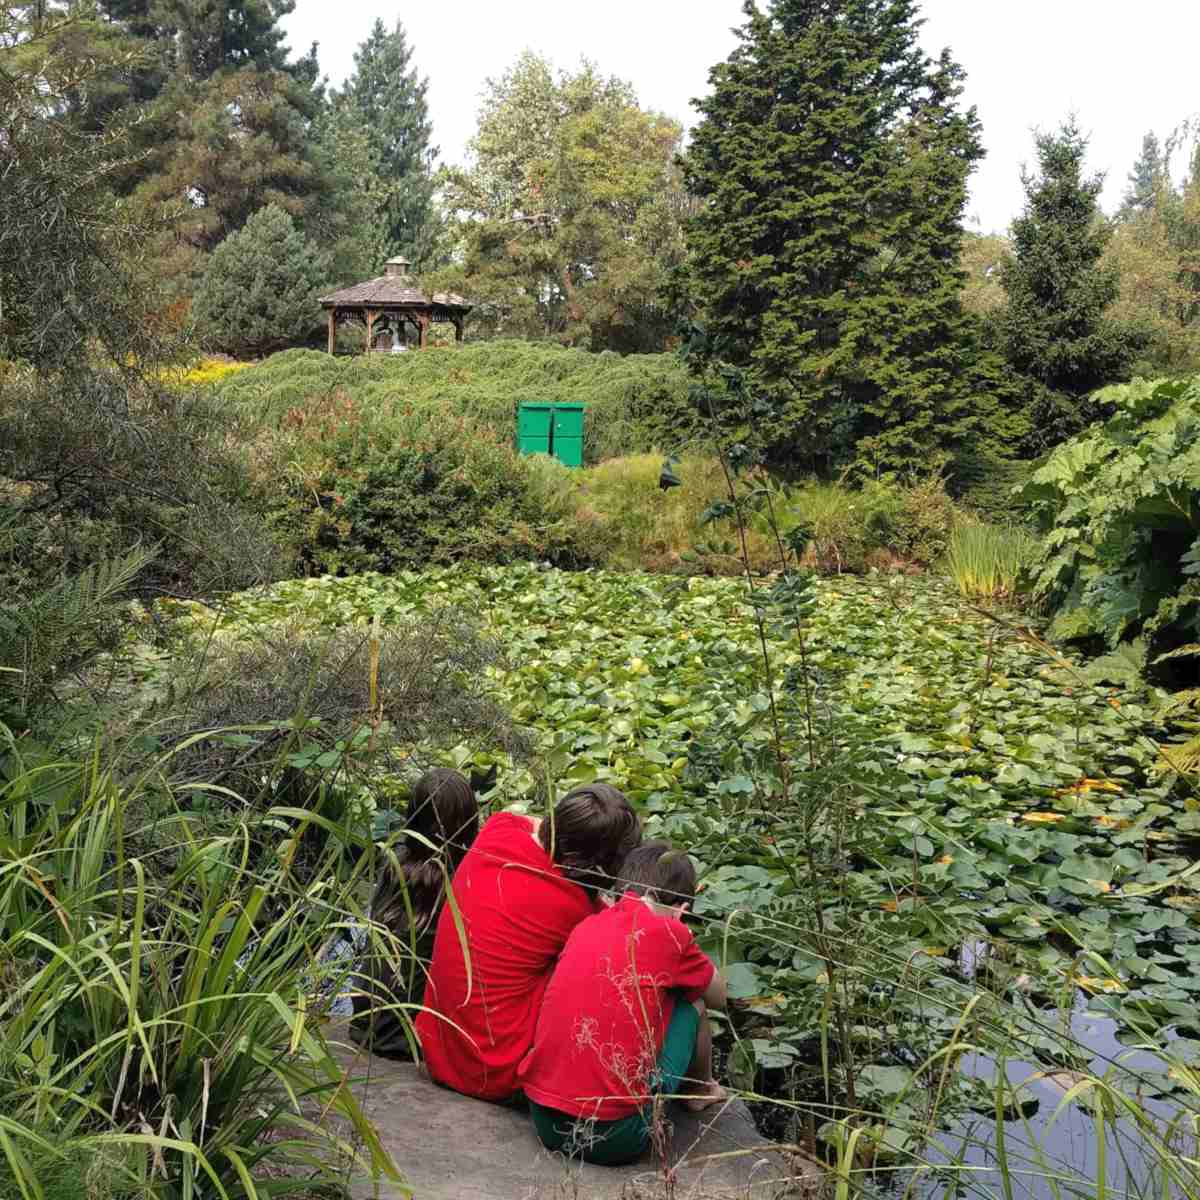 A huddle area near a pond in the garden